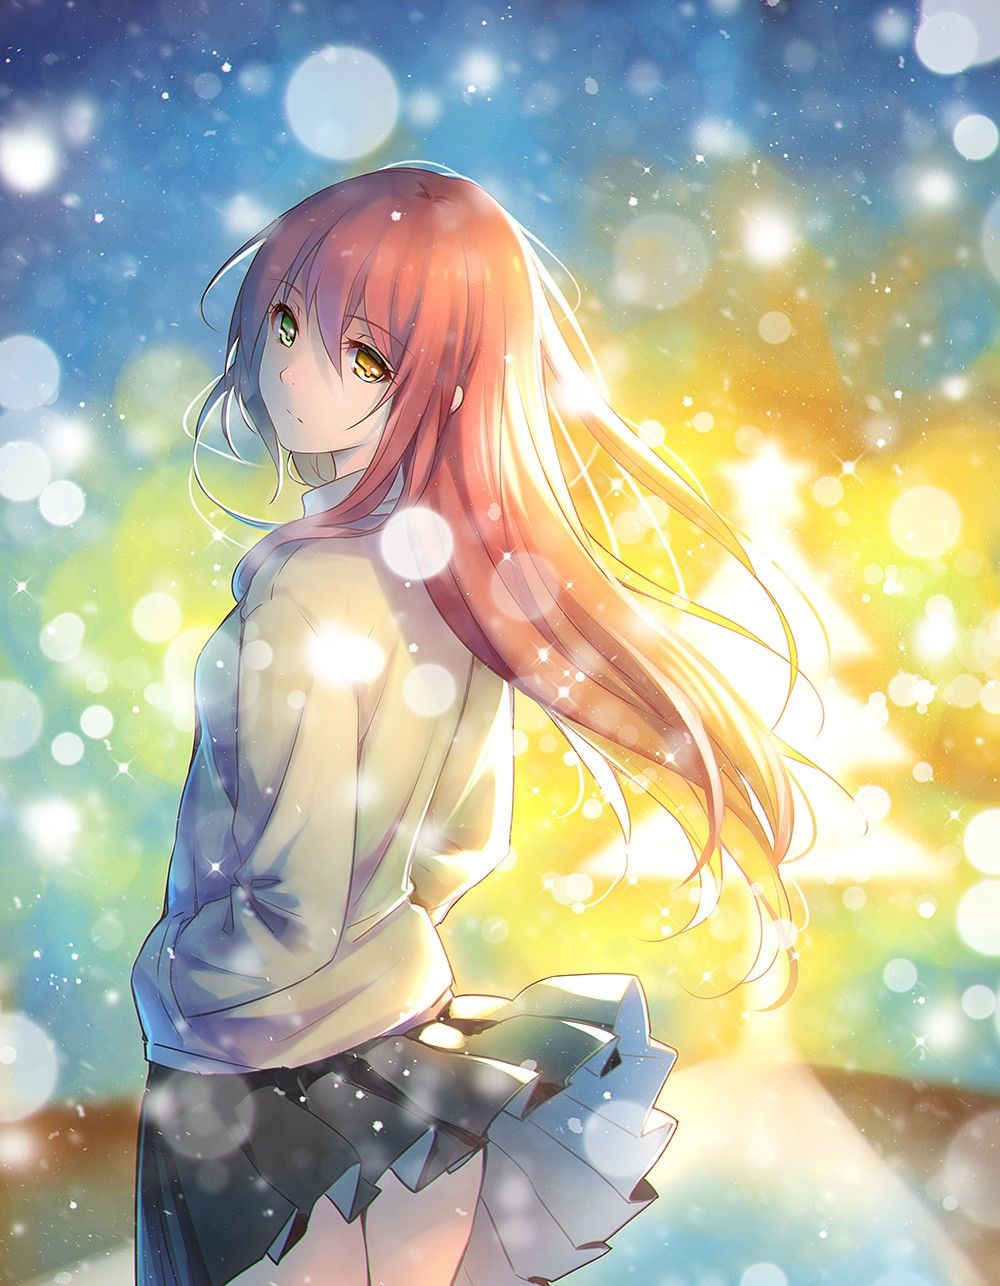 Anime Girl, Colorful, Long hair, Skirt, Snow, Beautiful